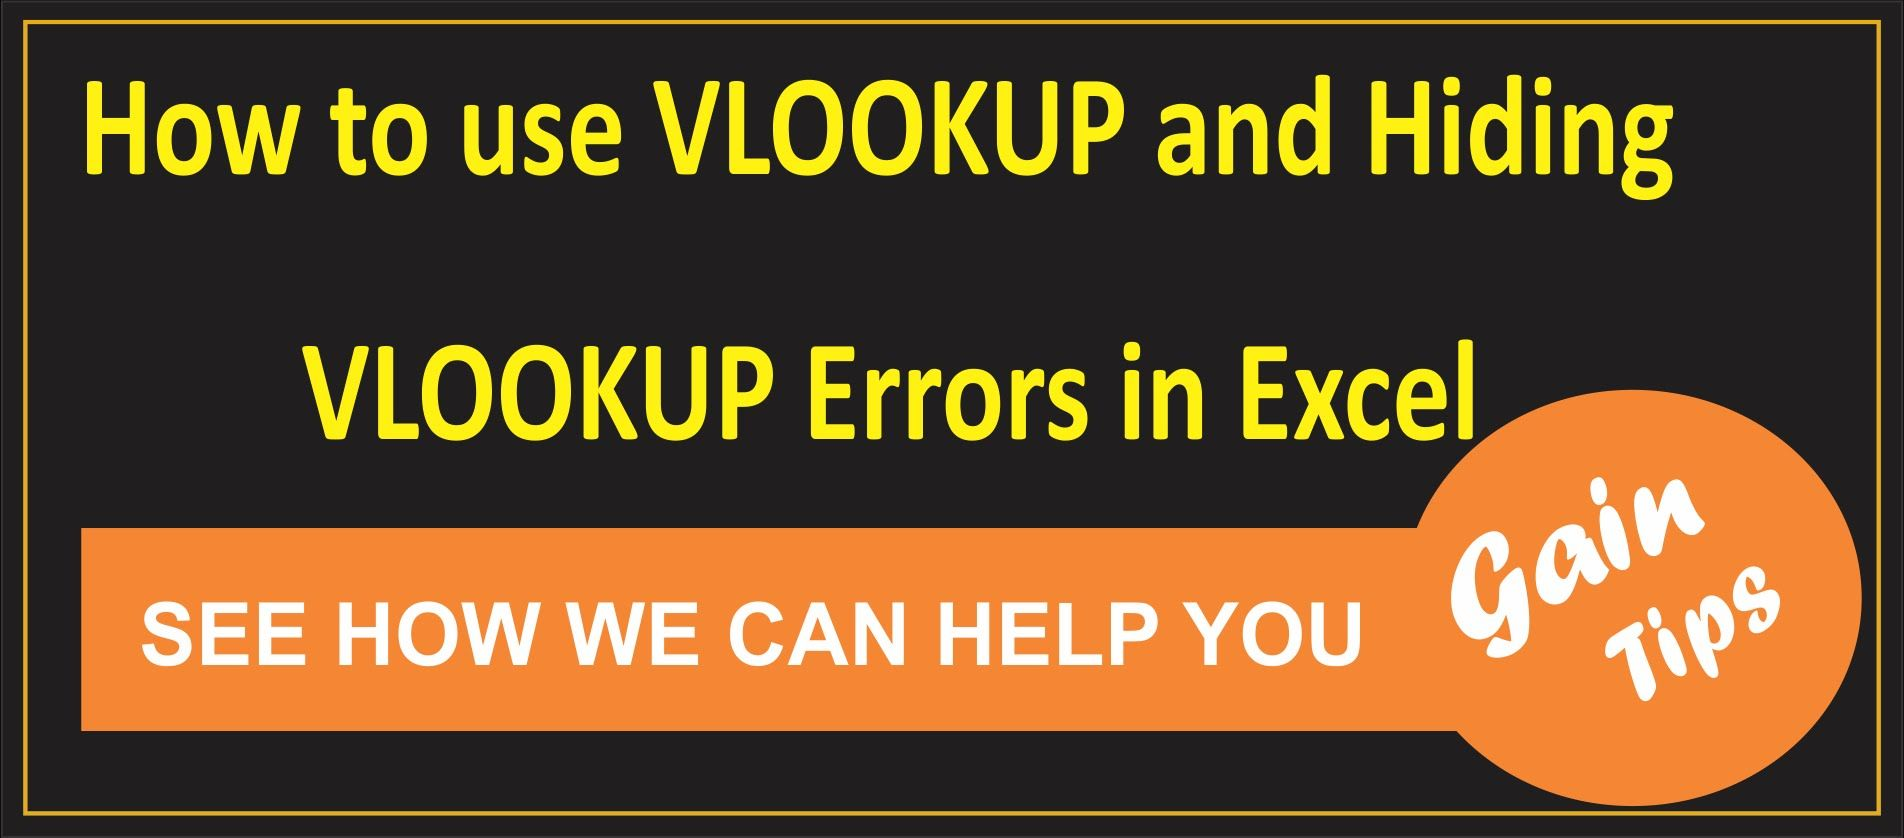 How To Use Vlookup And Hiding Vlookup Errors In Excel